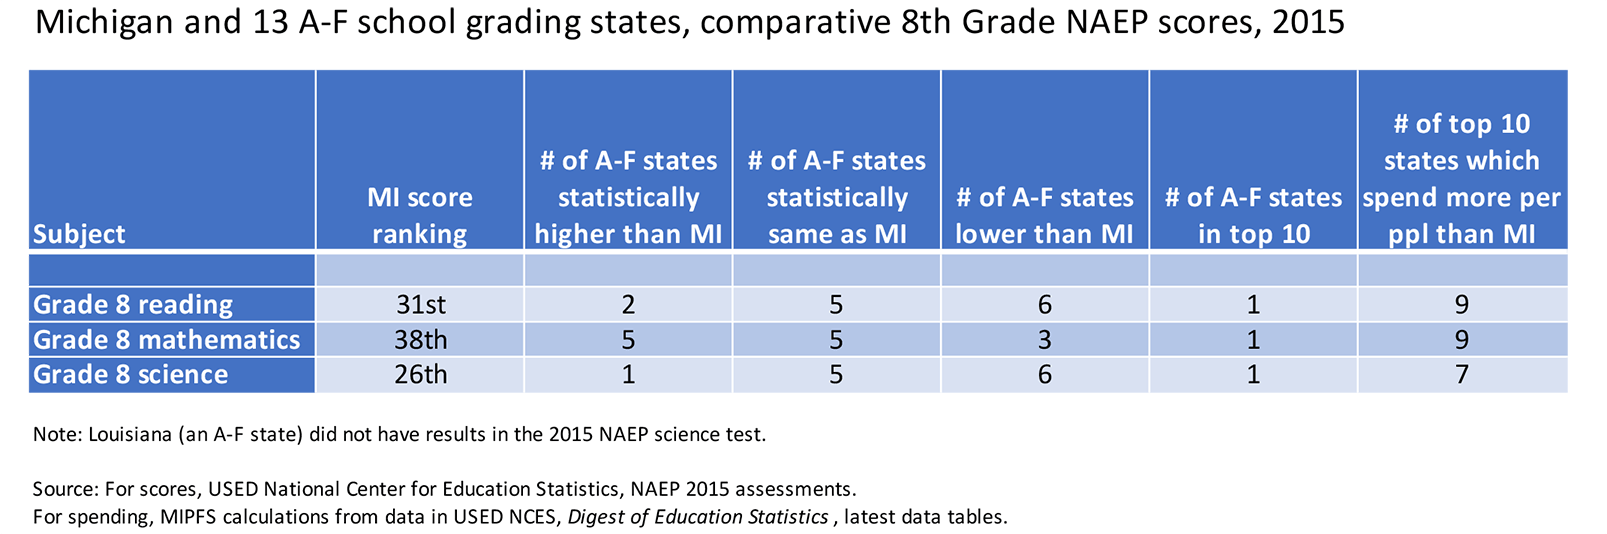 Comparison of MI to A-F states